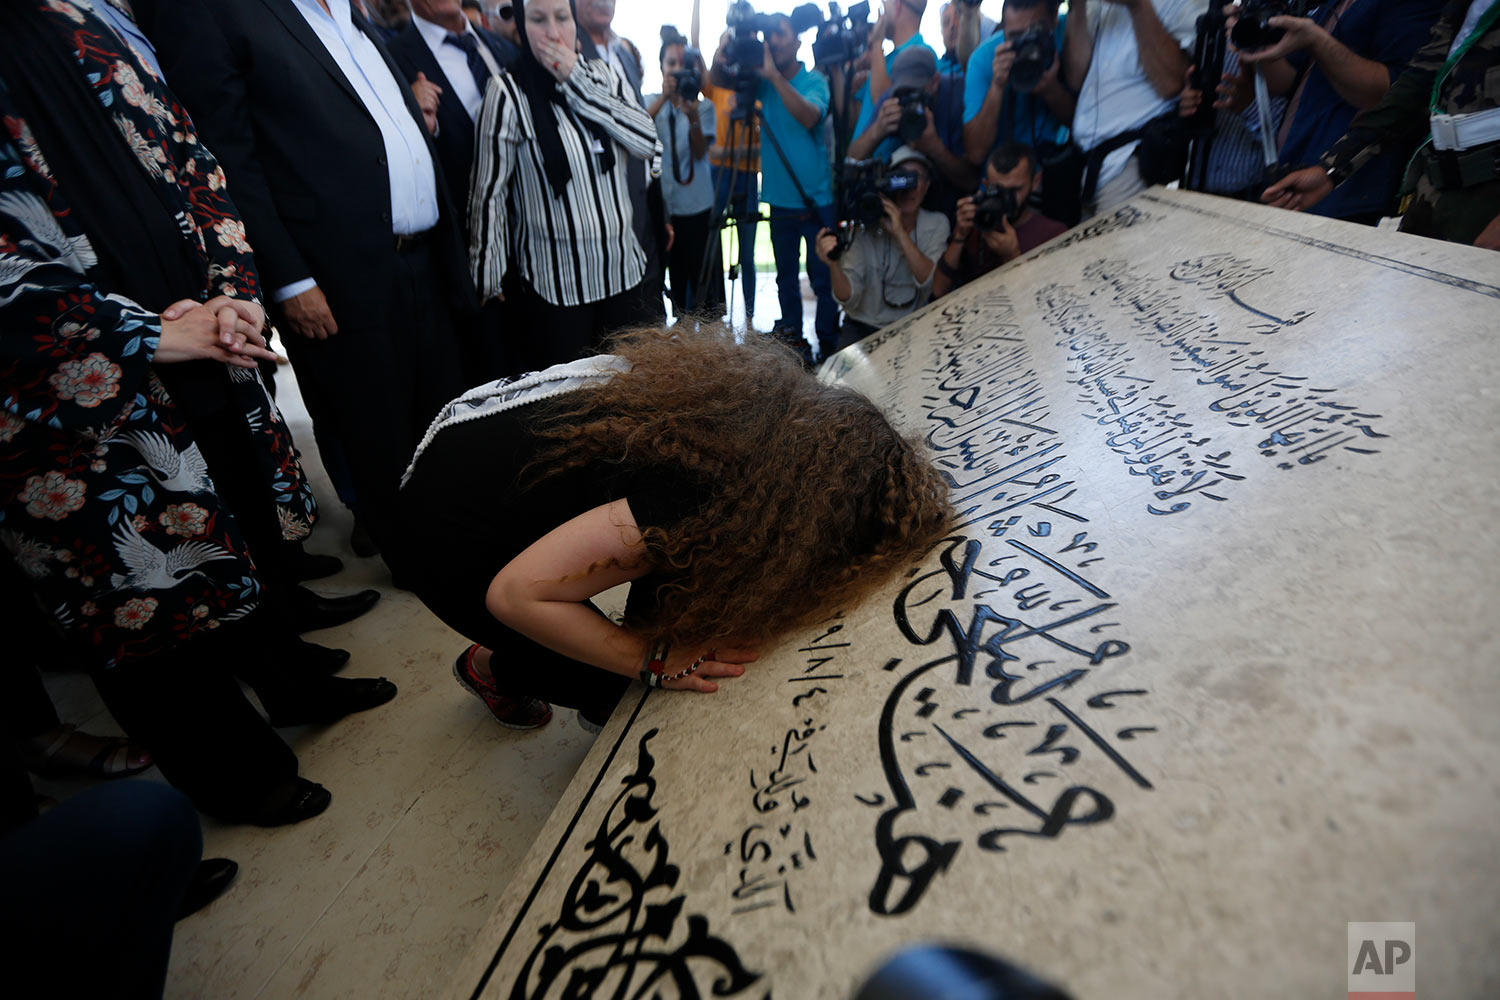 Ahed Tamimi prays at the tomb of former Palestinian leader Yasser Arafat in the West Bank city of Ramallah, Sunday, July 29, 2018. Palestinian protest icon Ahed Tamimi and her mother Nariman returned home to a hero's welcome in her West Bank village on Sunday after Israel released the 17-year-old from prison at the end of her eight-month sentence for slapping and kicking Israeli soldiers. (AP Photo/Majdi Mohammed)